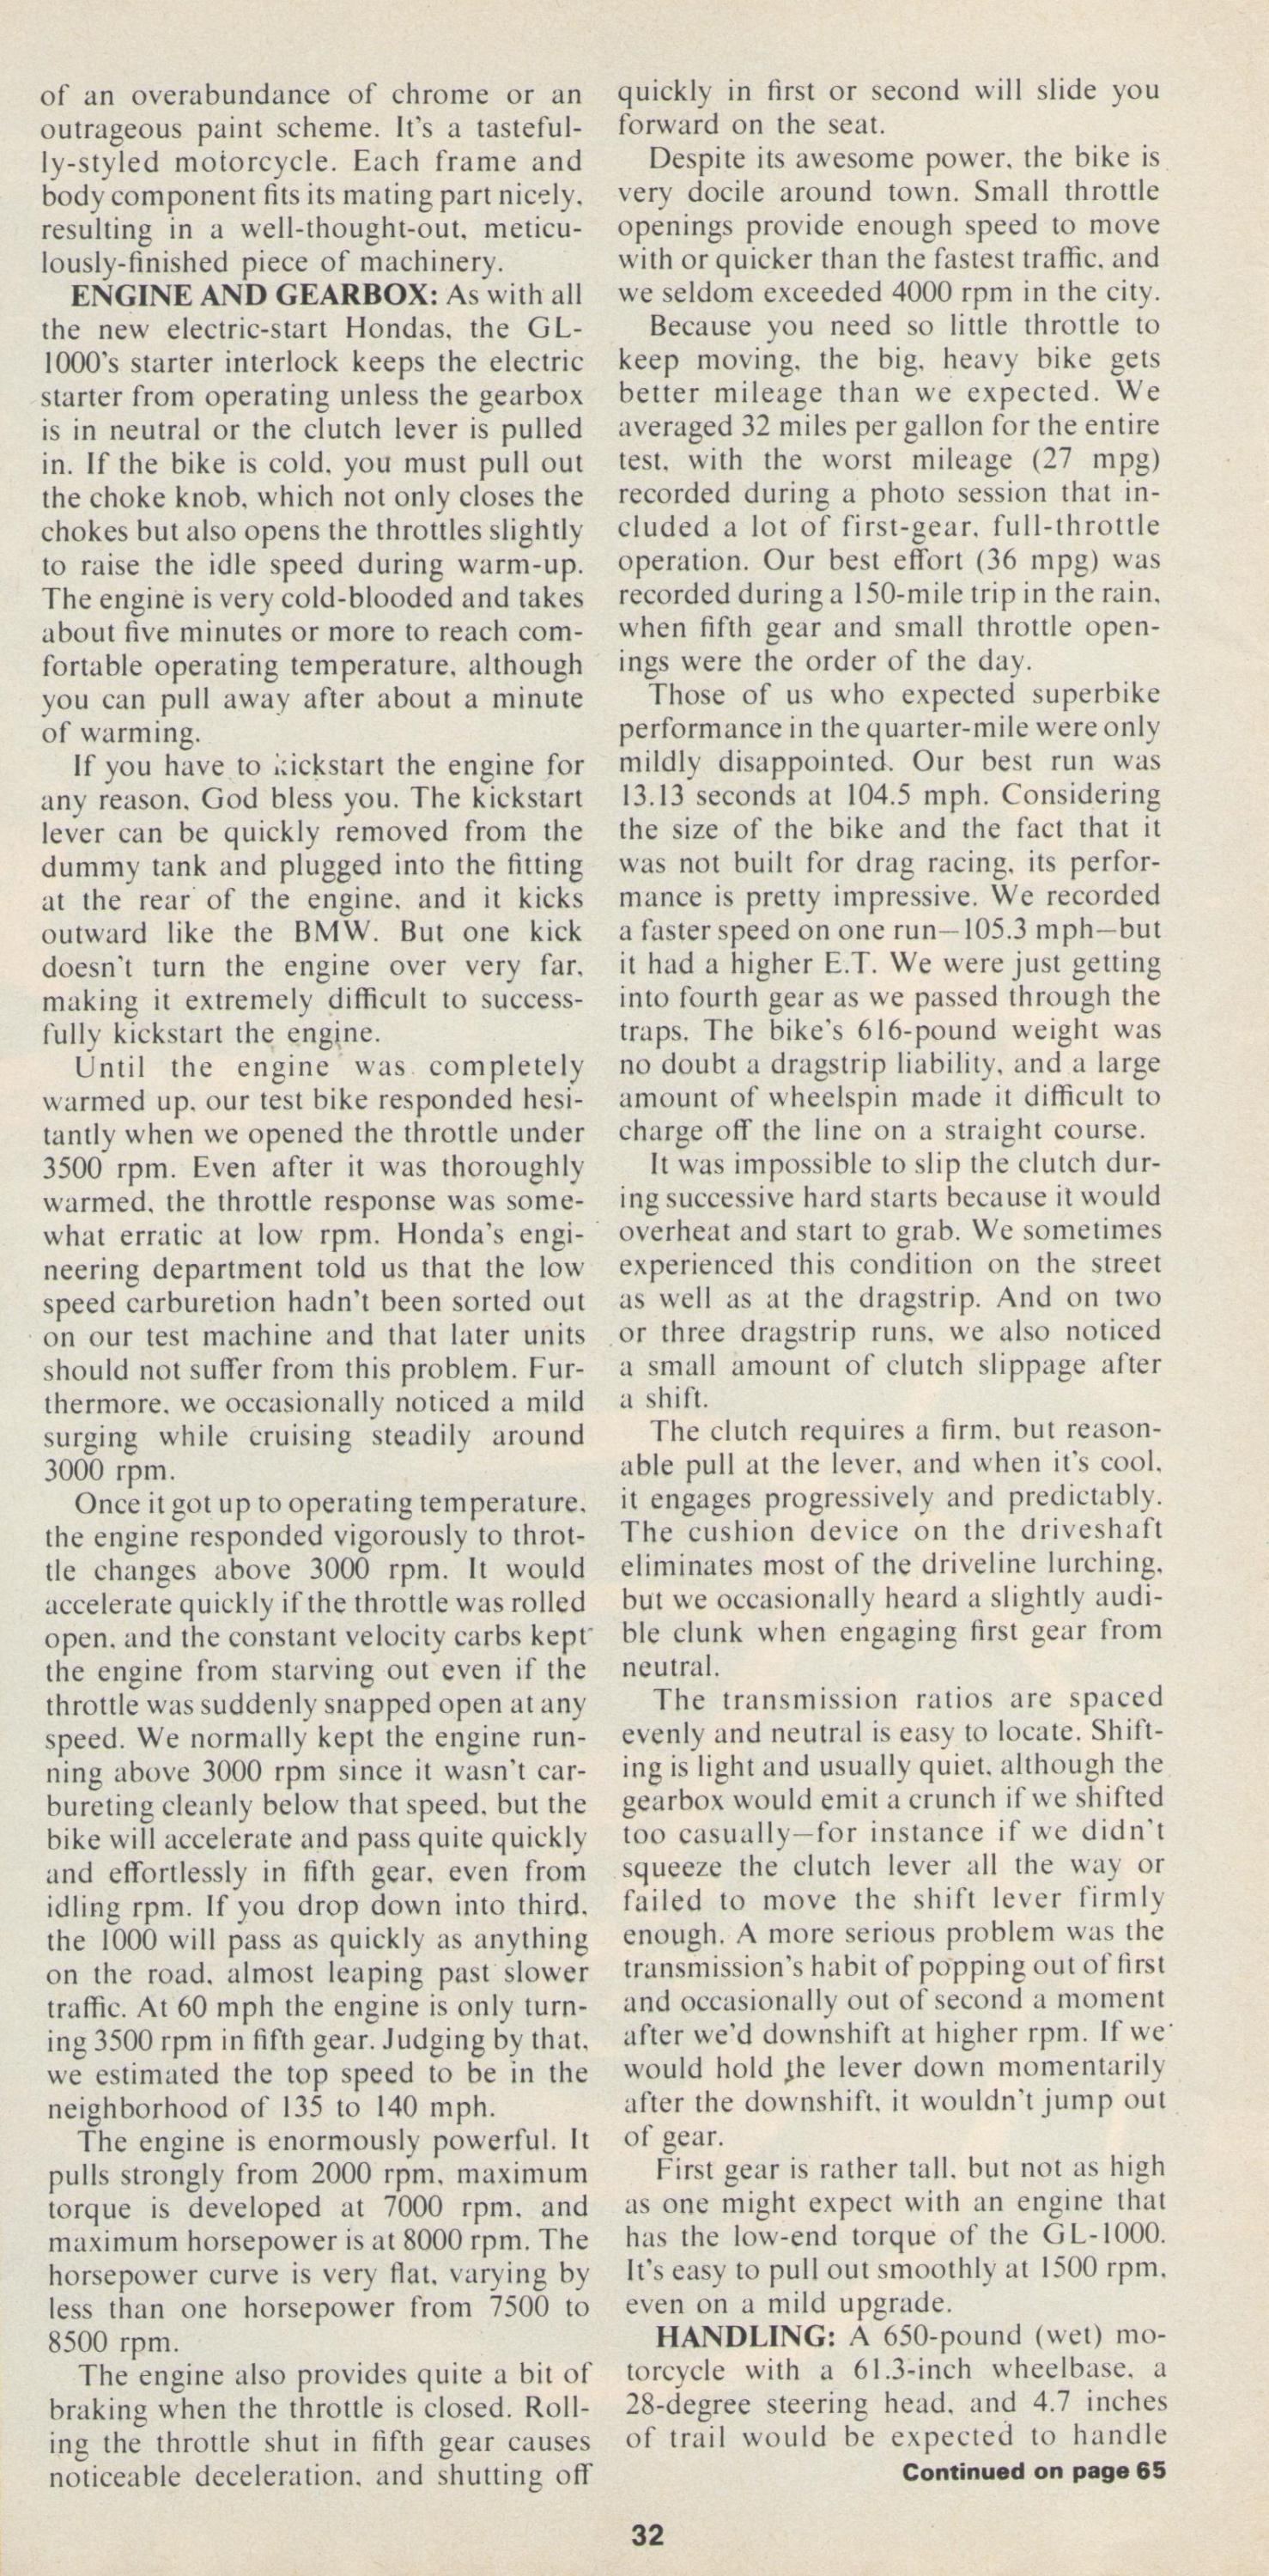 1975 GL-1000 test report Cycle Guide Magazine April 1975-1975-gl-1000-test-report-p.7.jpg